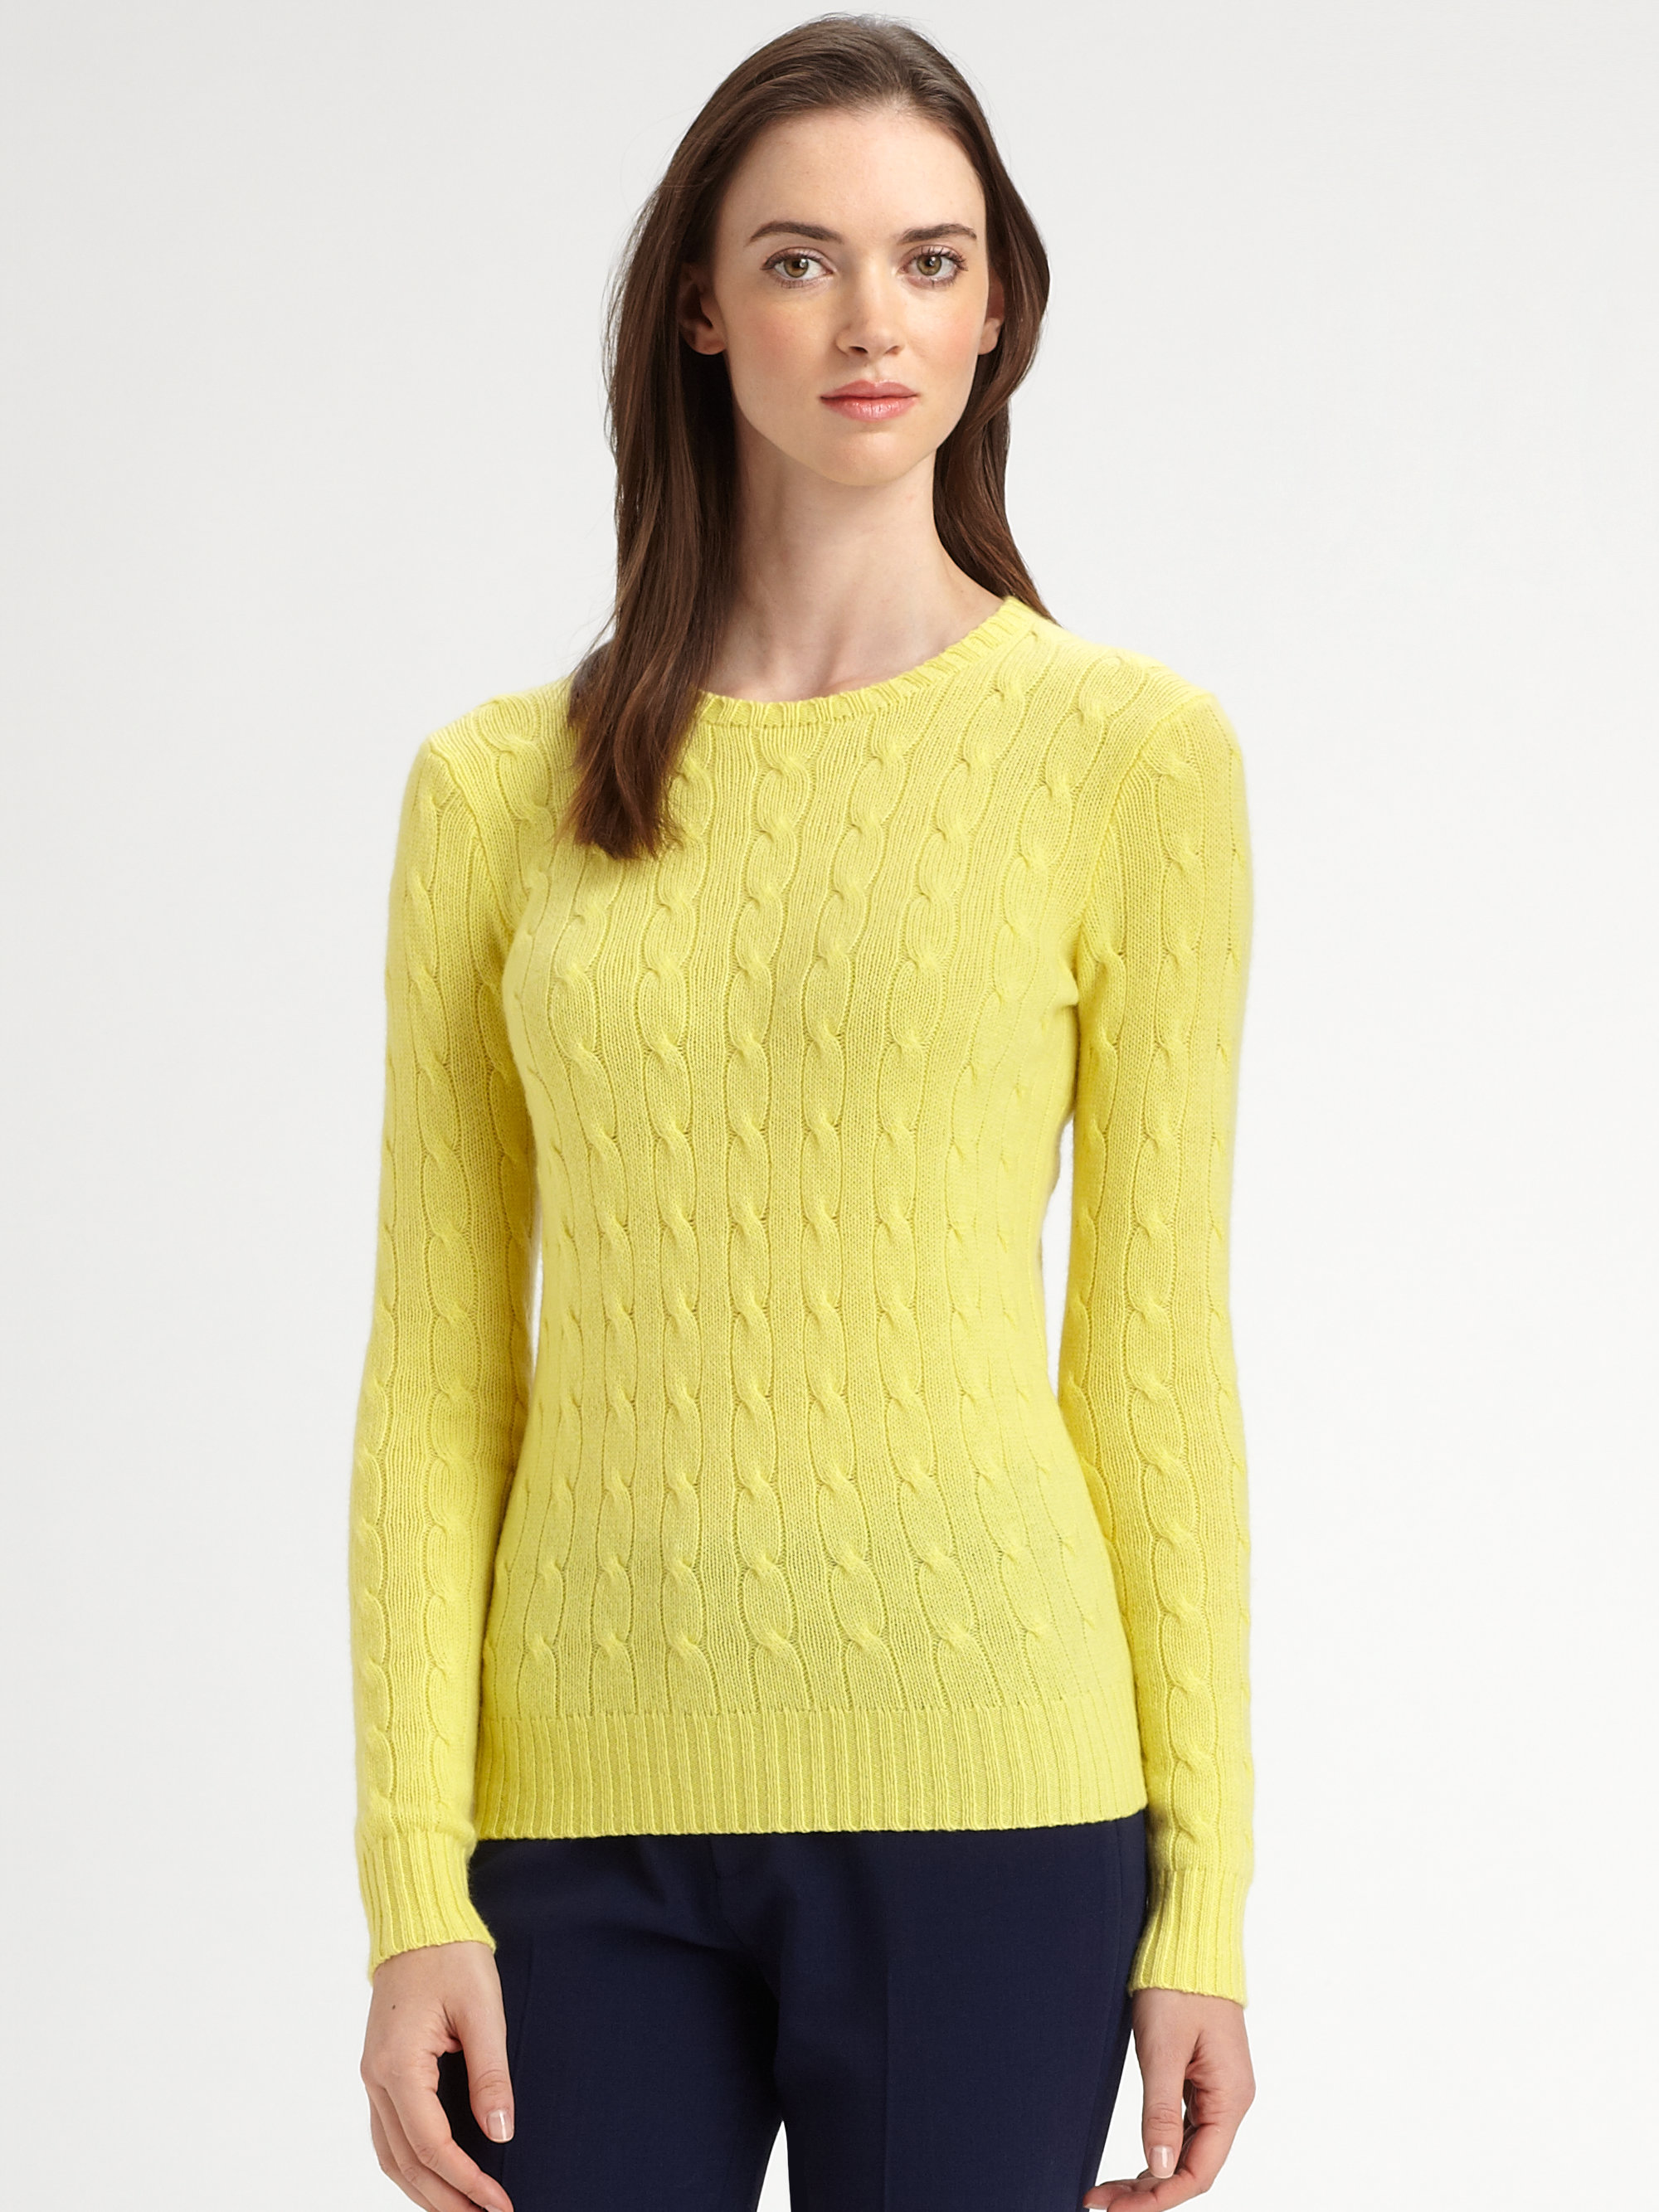 Ralph lauren black label Cable-Knit Cashmere Sweater in Yellow | Lyst